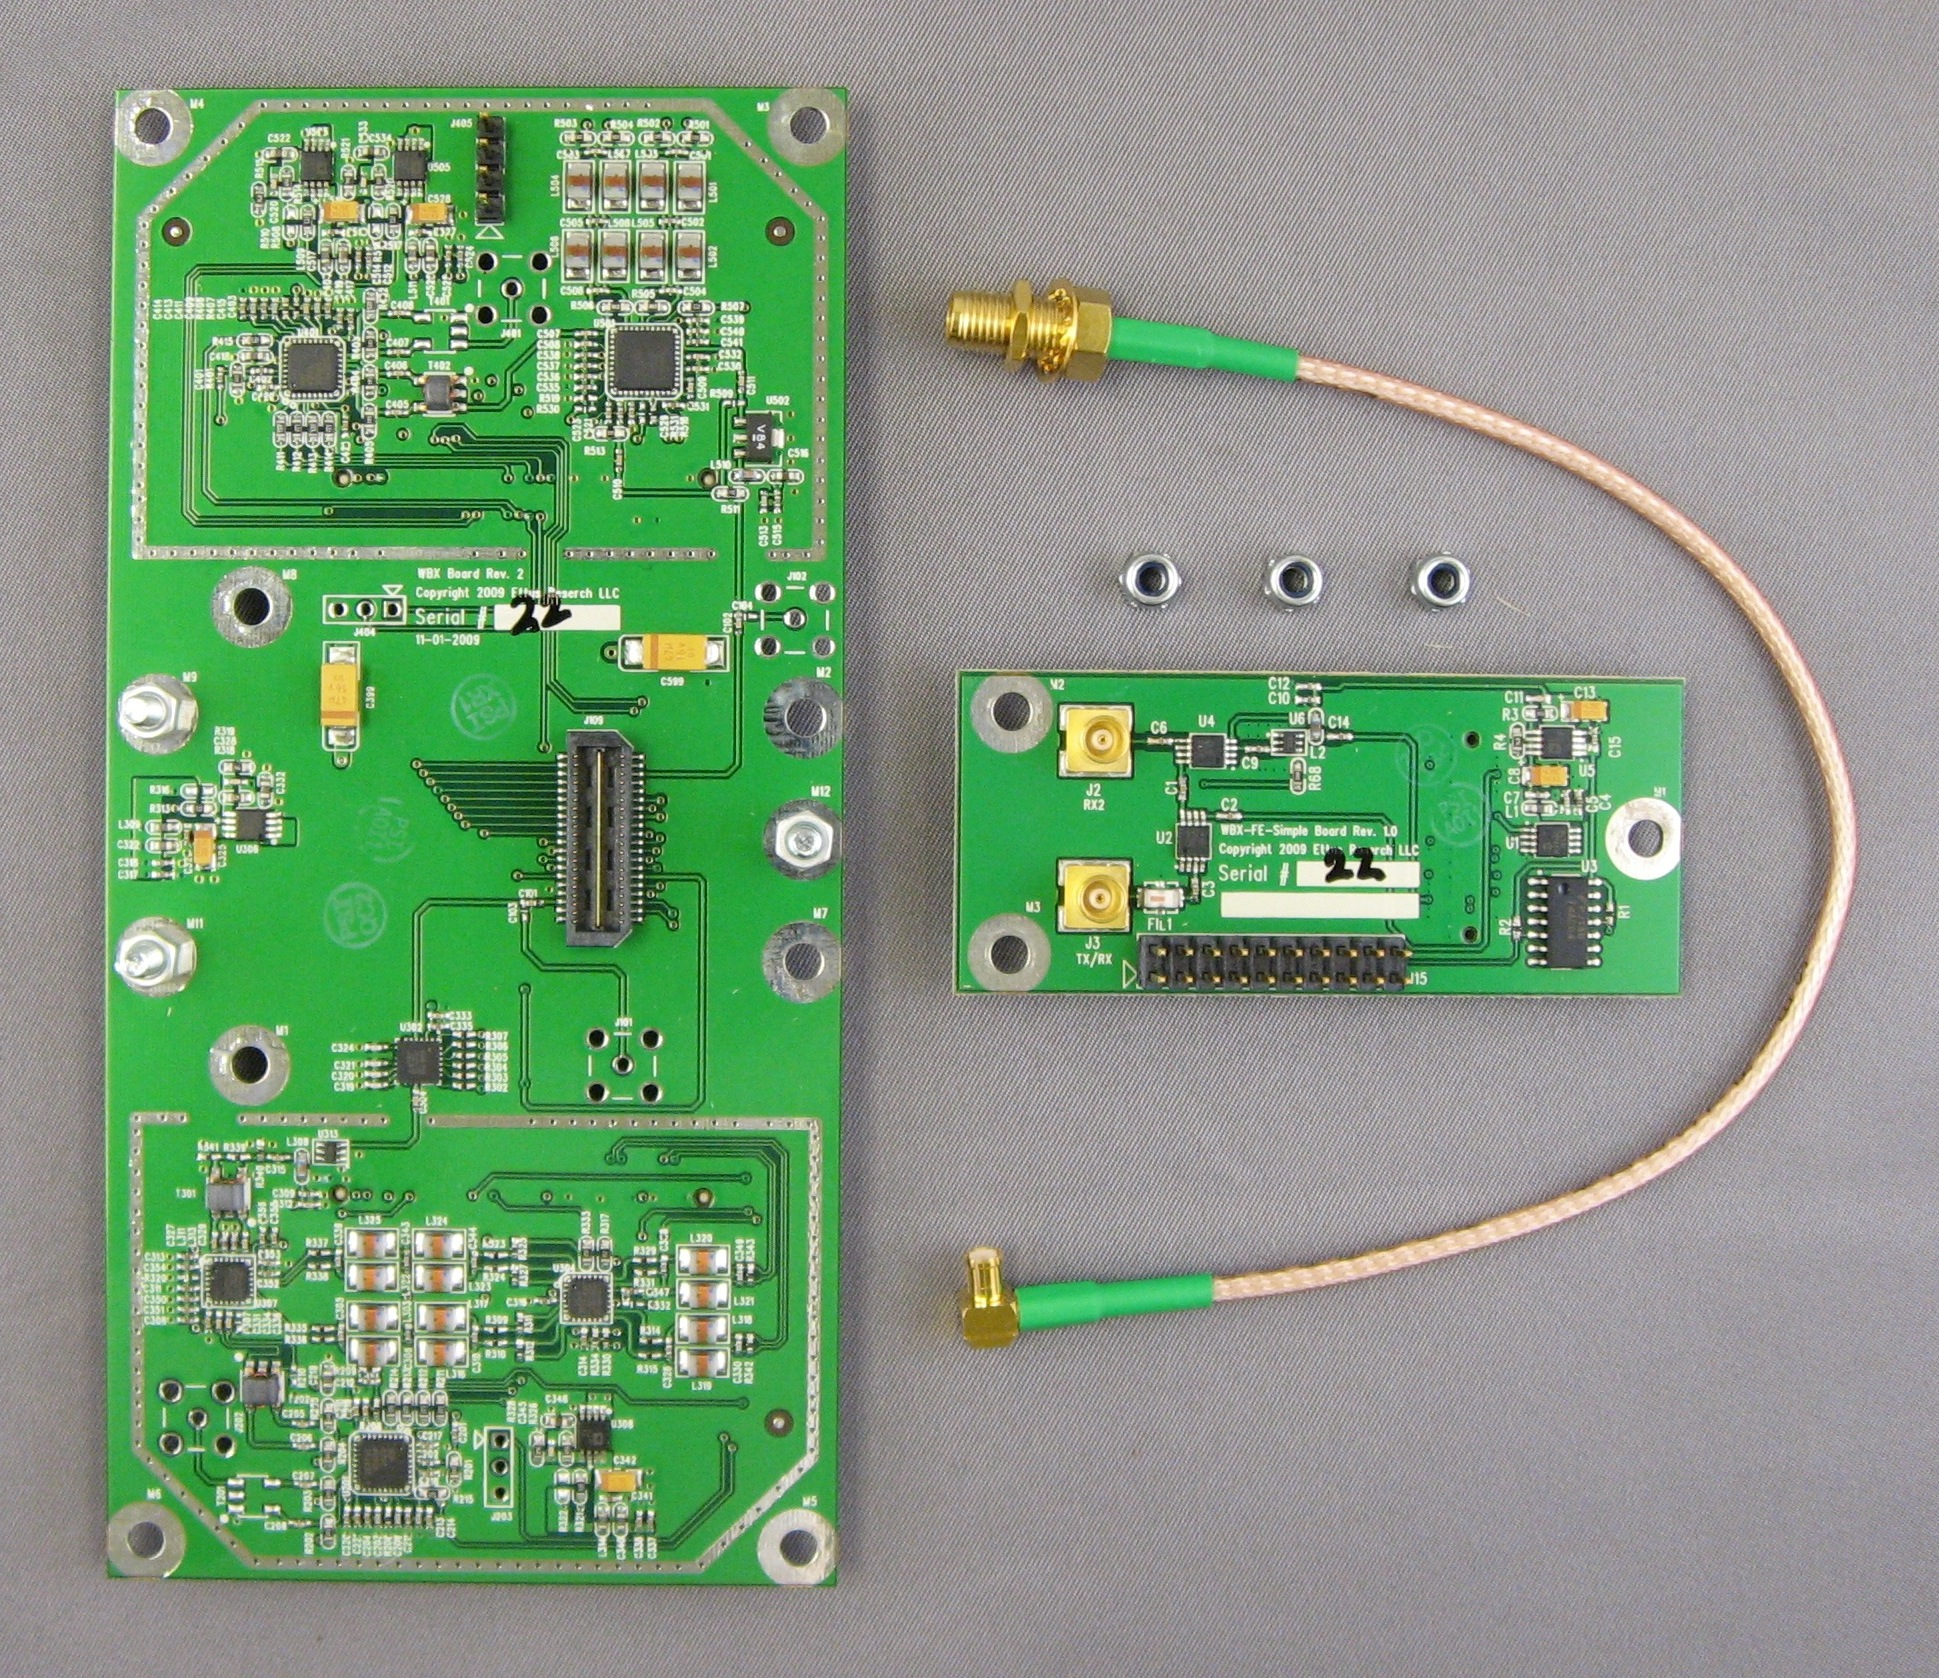 Products / Prices (USRP, OpenBTS kits, accessories) | www